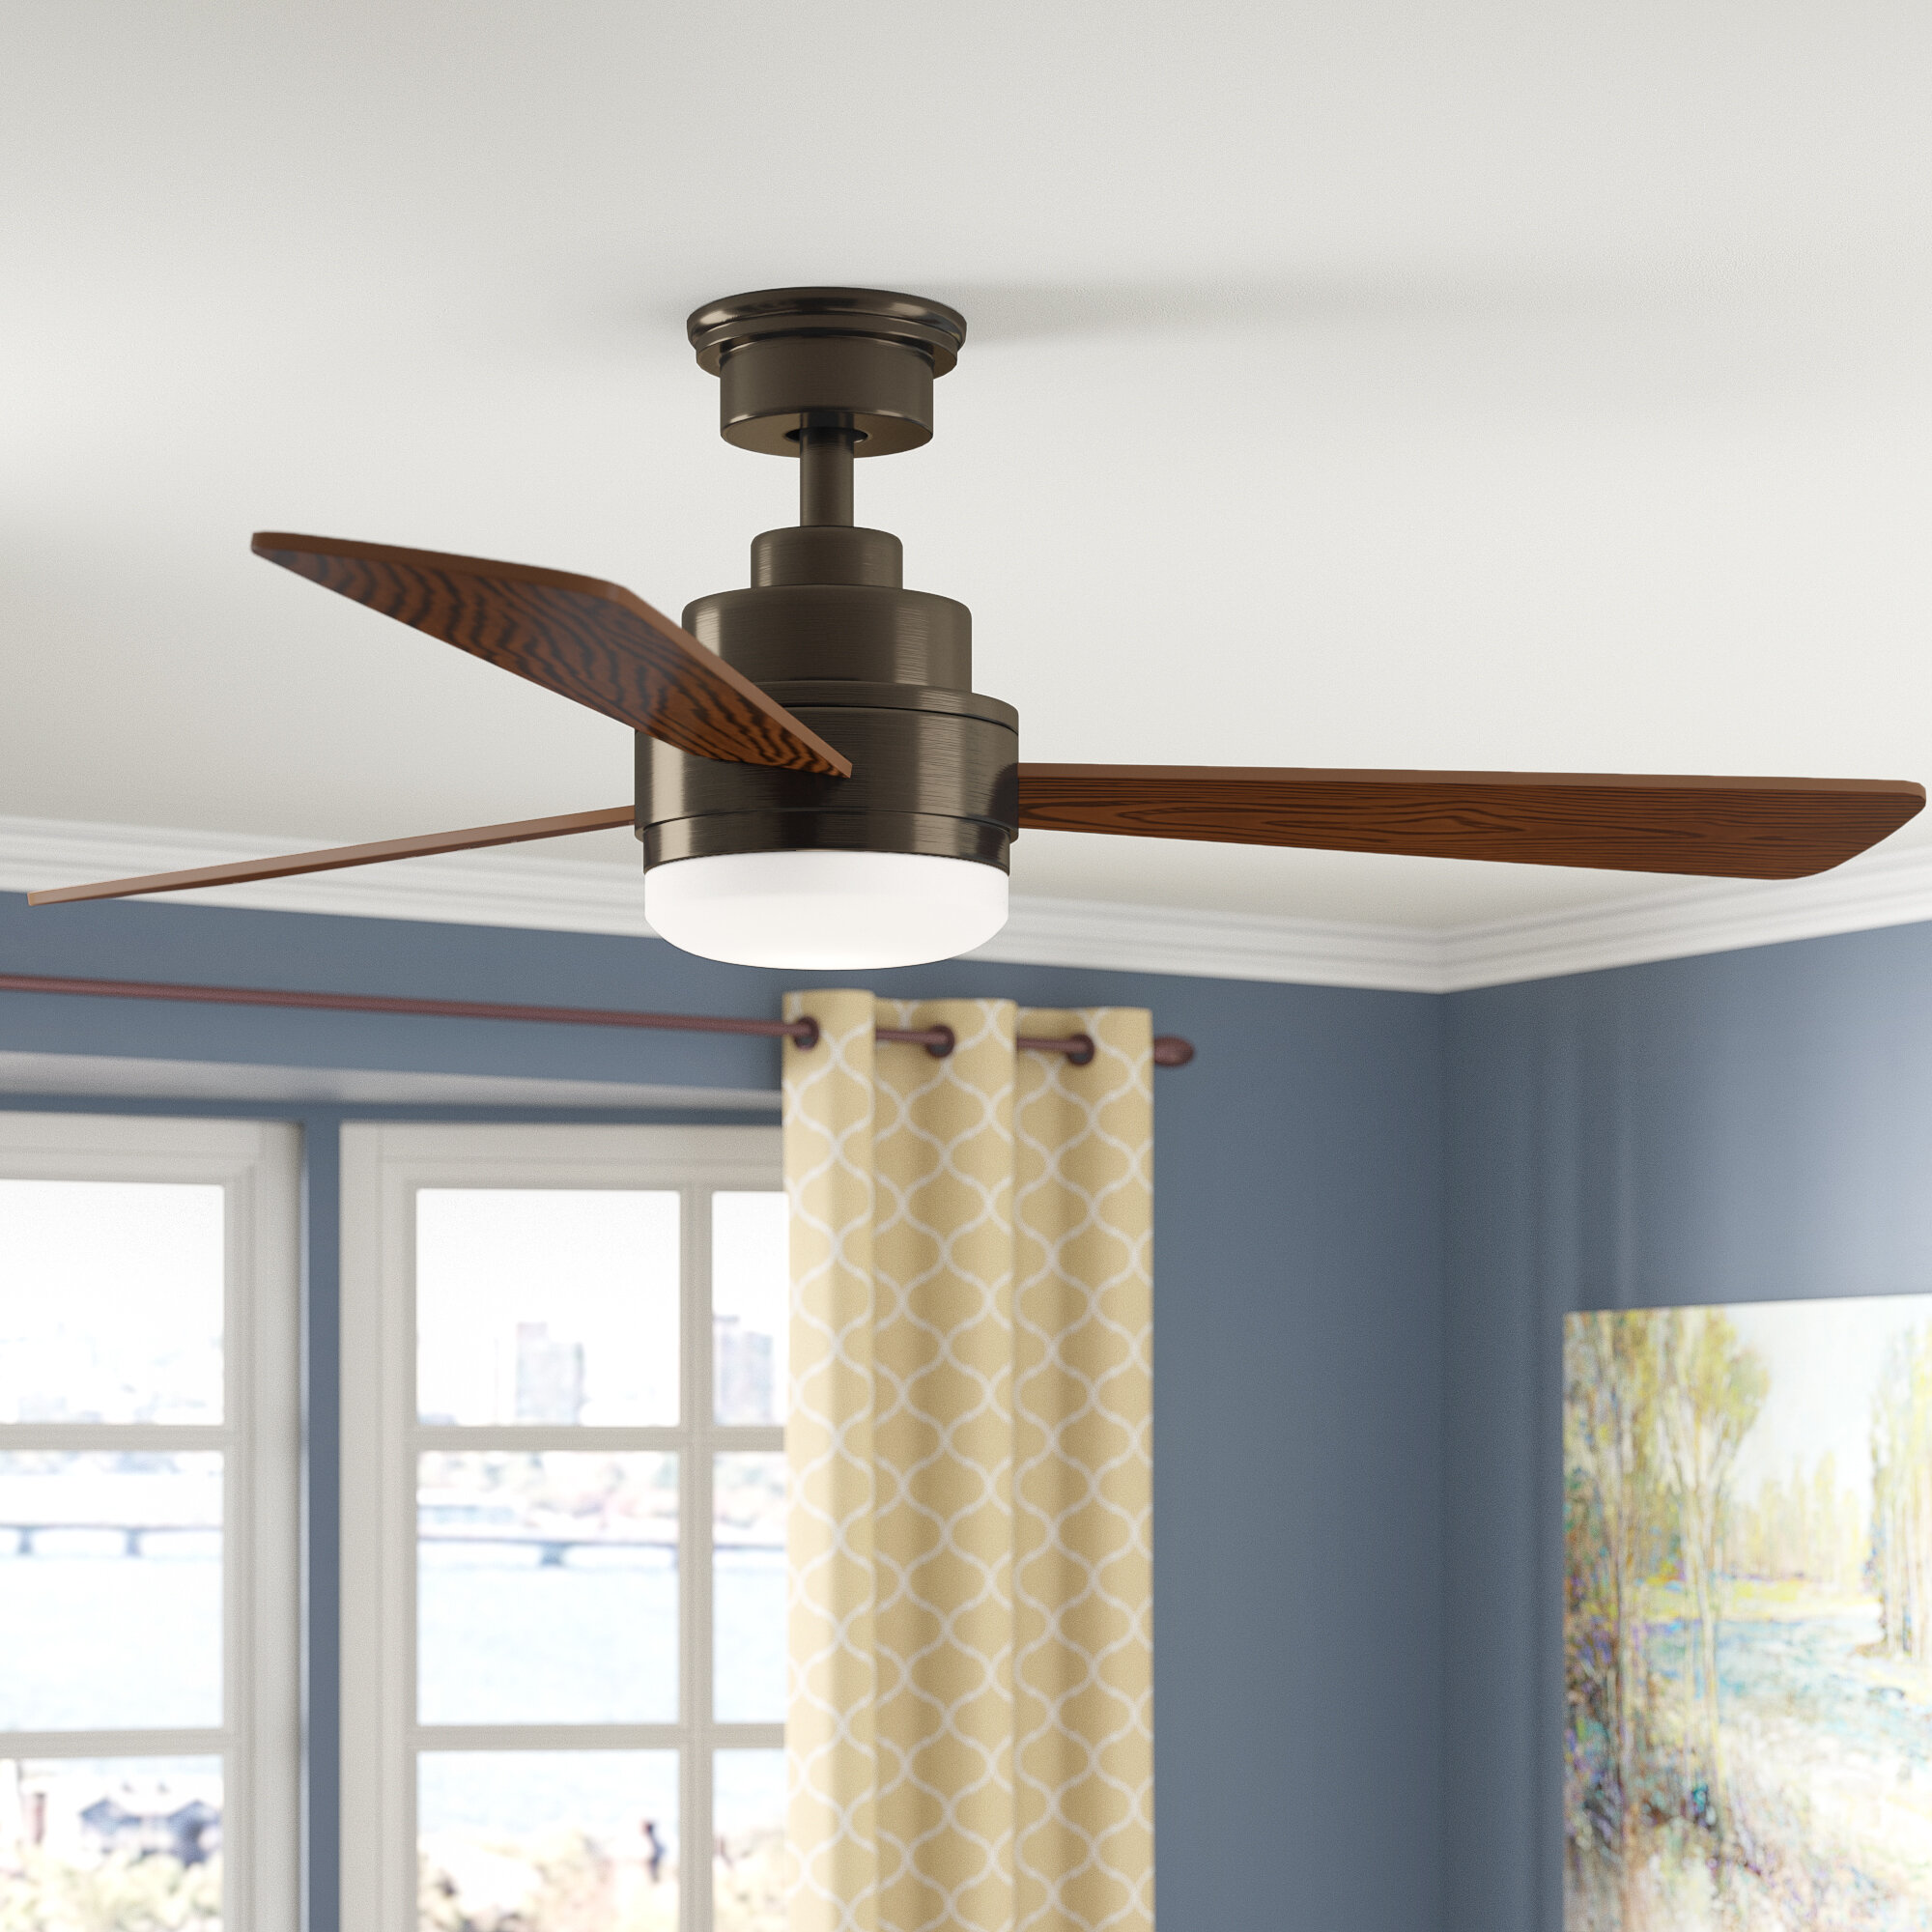 ceiling fans blade studio pdp wayfair reviews paddle brayden fan pepin lighting ca remote with